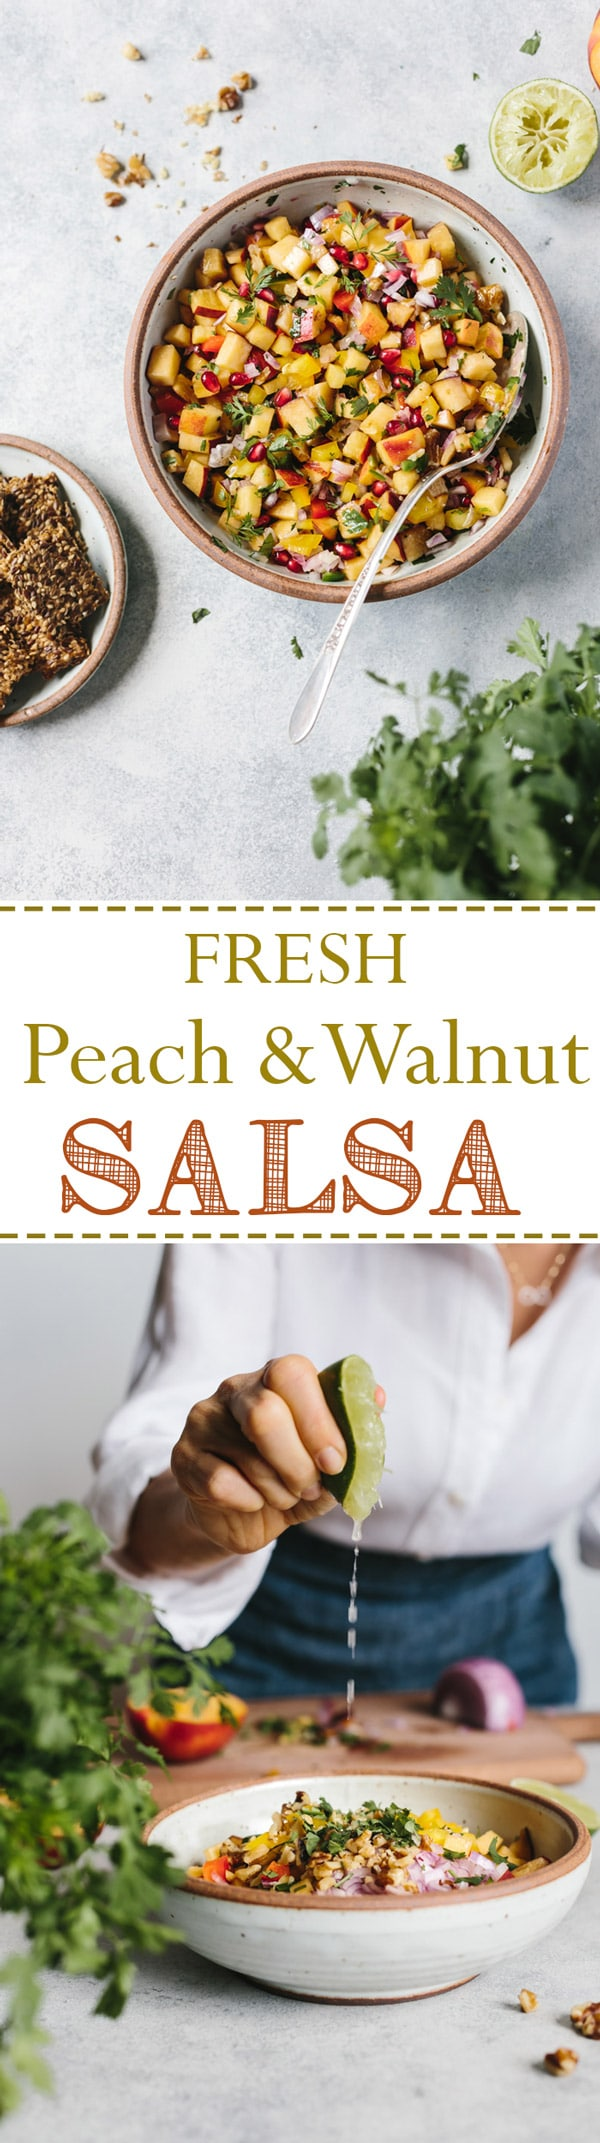 Fresh Peach and Walnut Salsa - A refreshing and flavorful summer salsa made with fresh peaches and walnuts. Serve over fish, in tacos, or by itself with crackers. GF+VEGAN